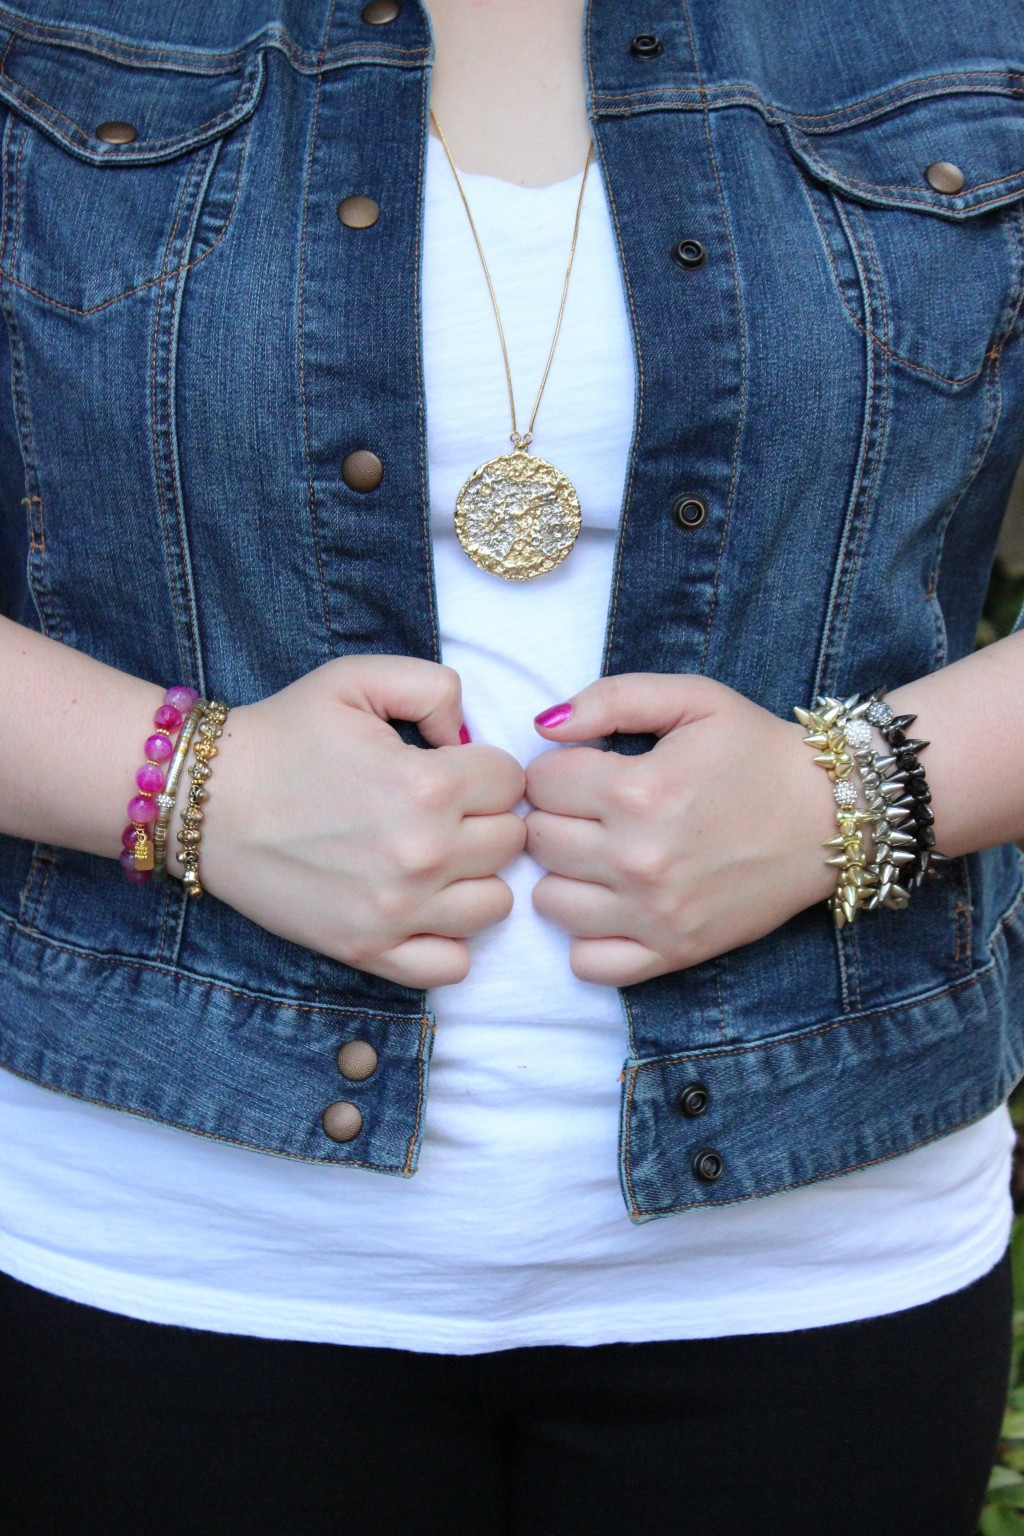 Marrin Costello Necklace and Arm Party